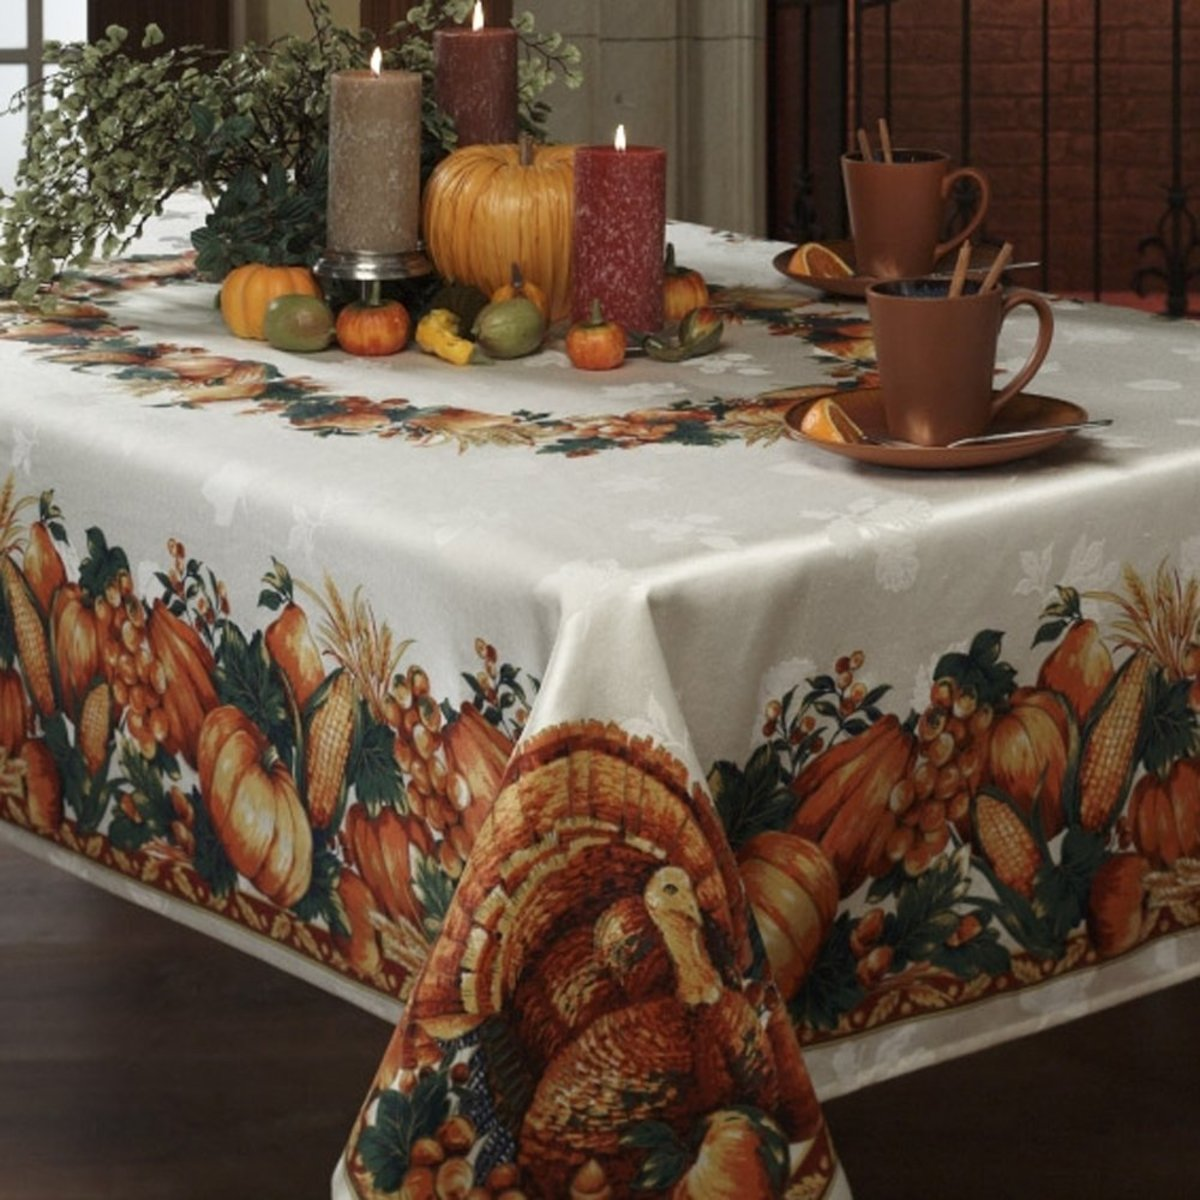 Thanksgiving Table Photo